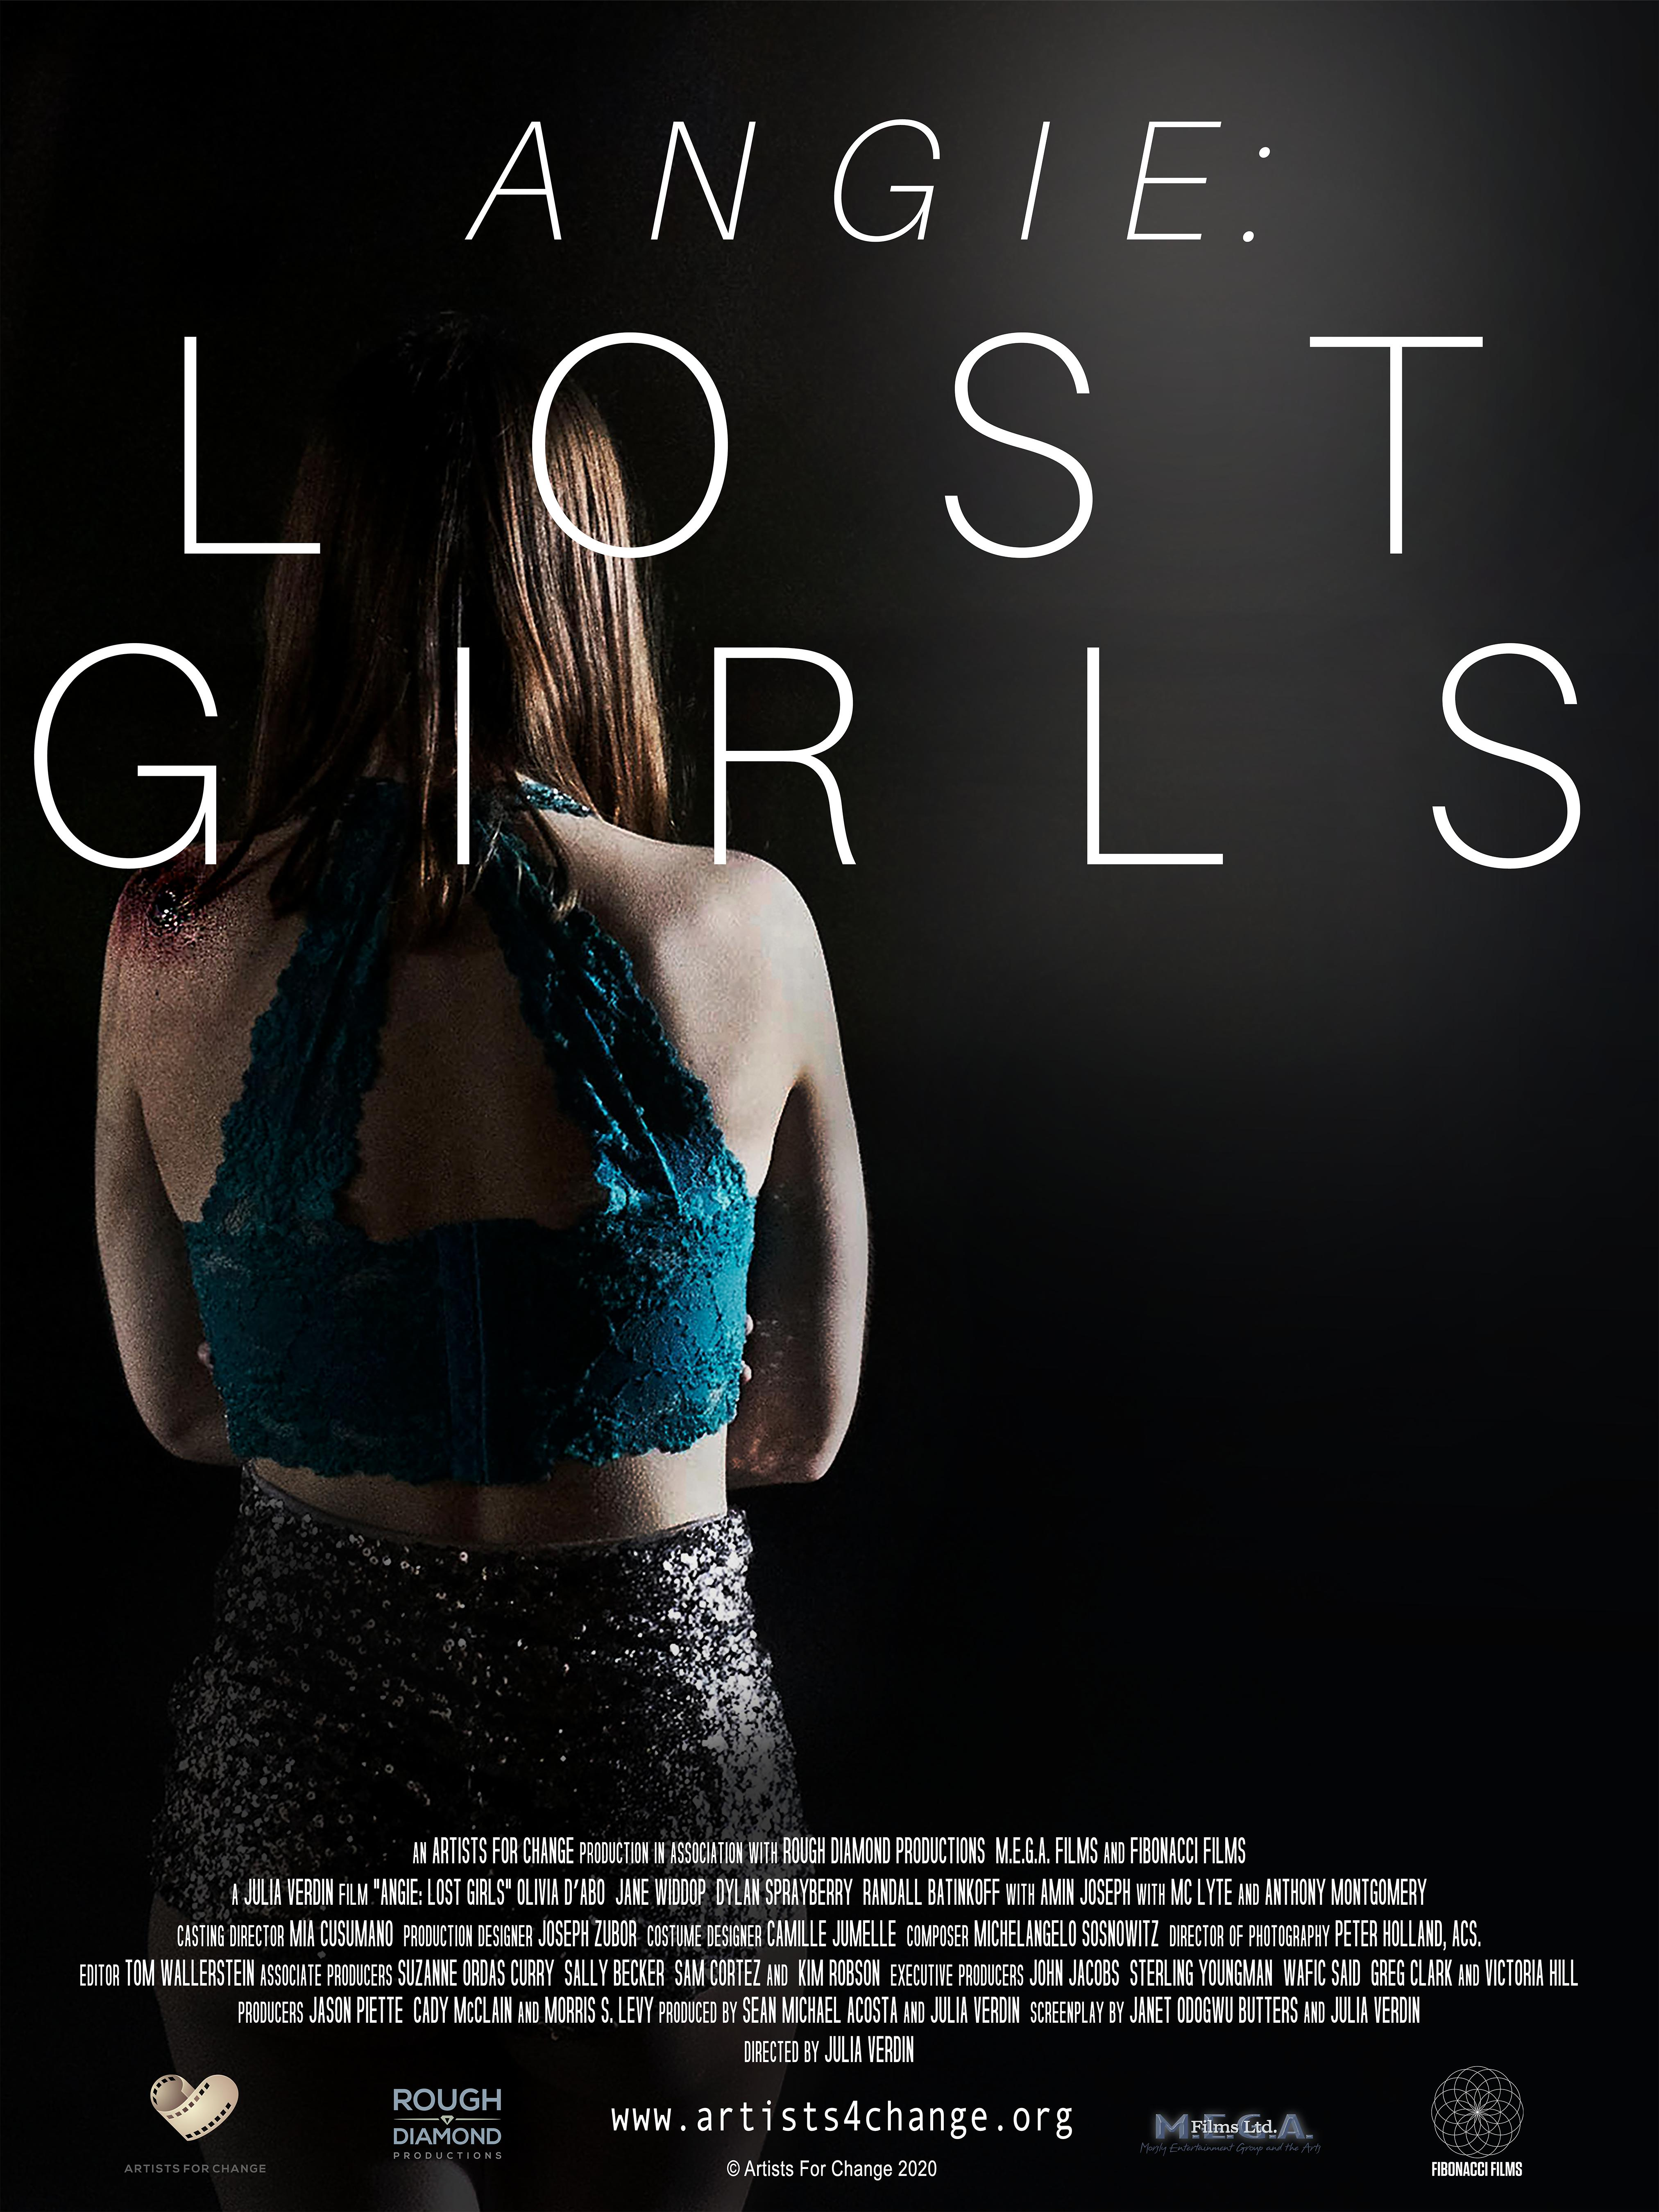 watch Angie: Lost Girls on soap2day